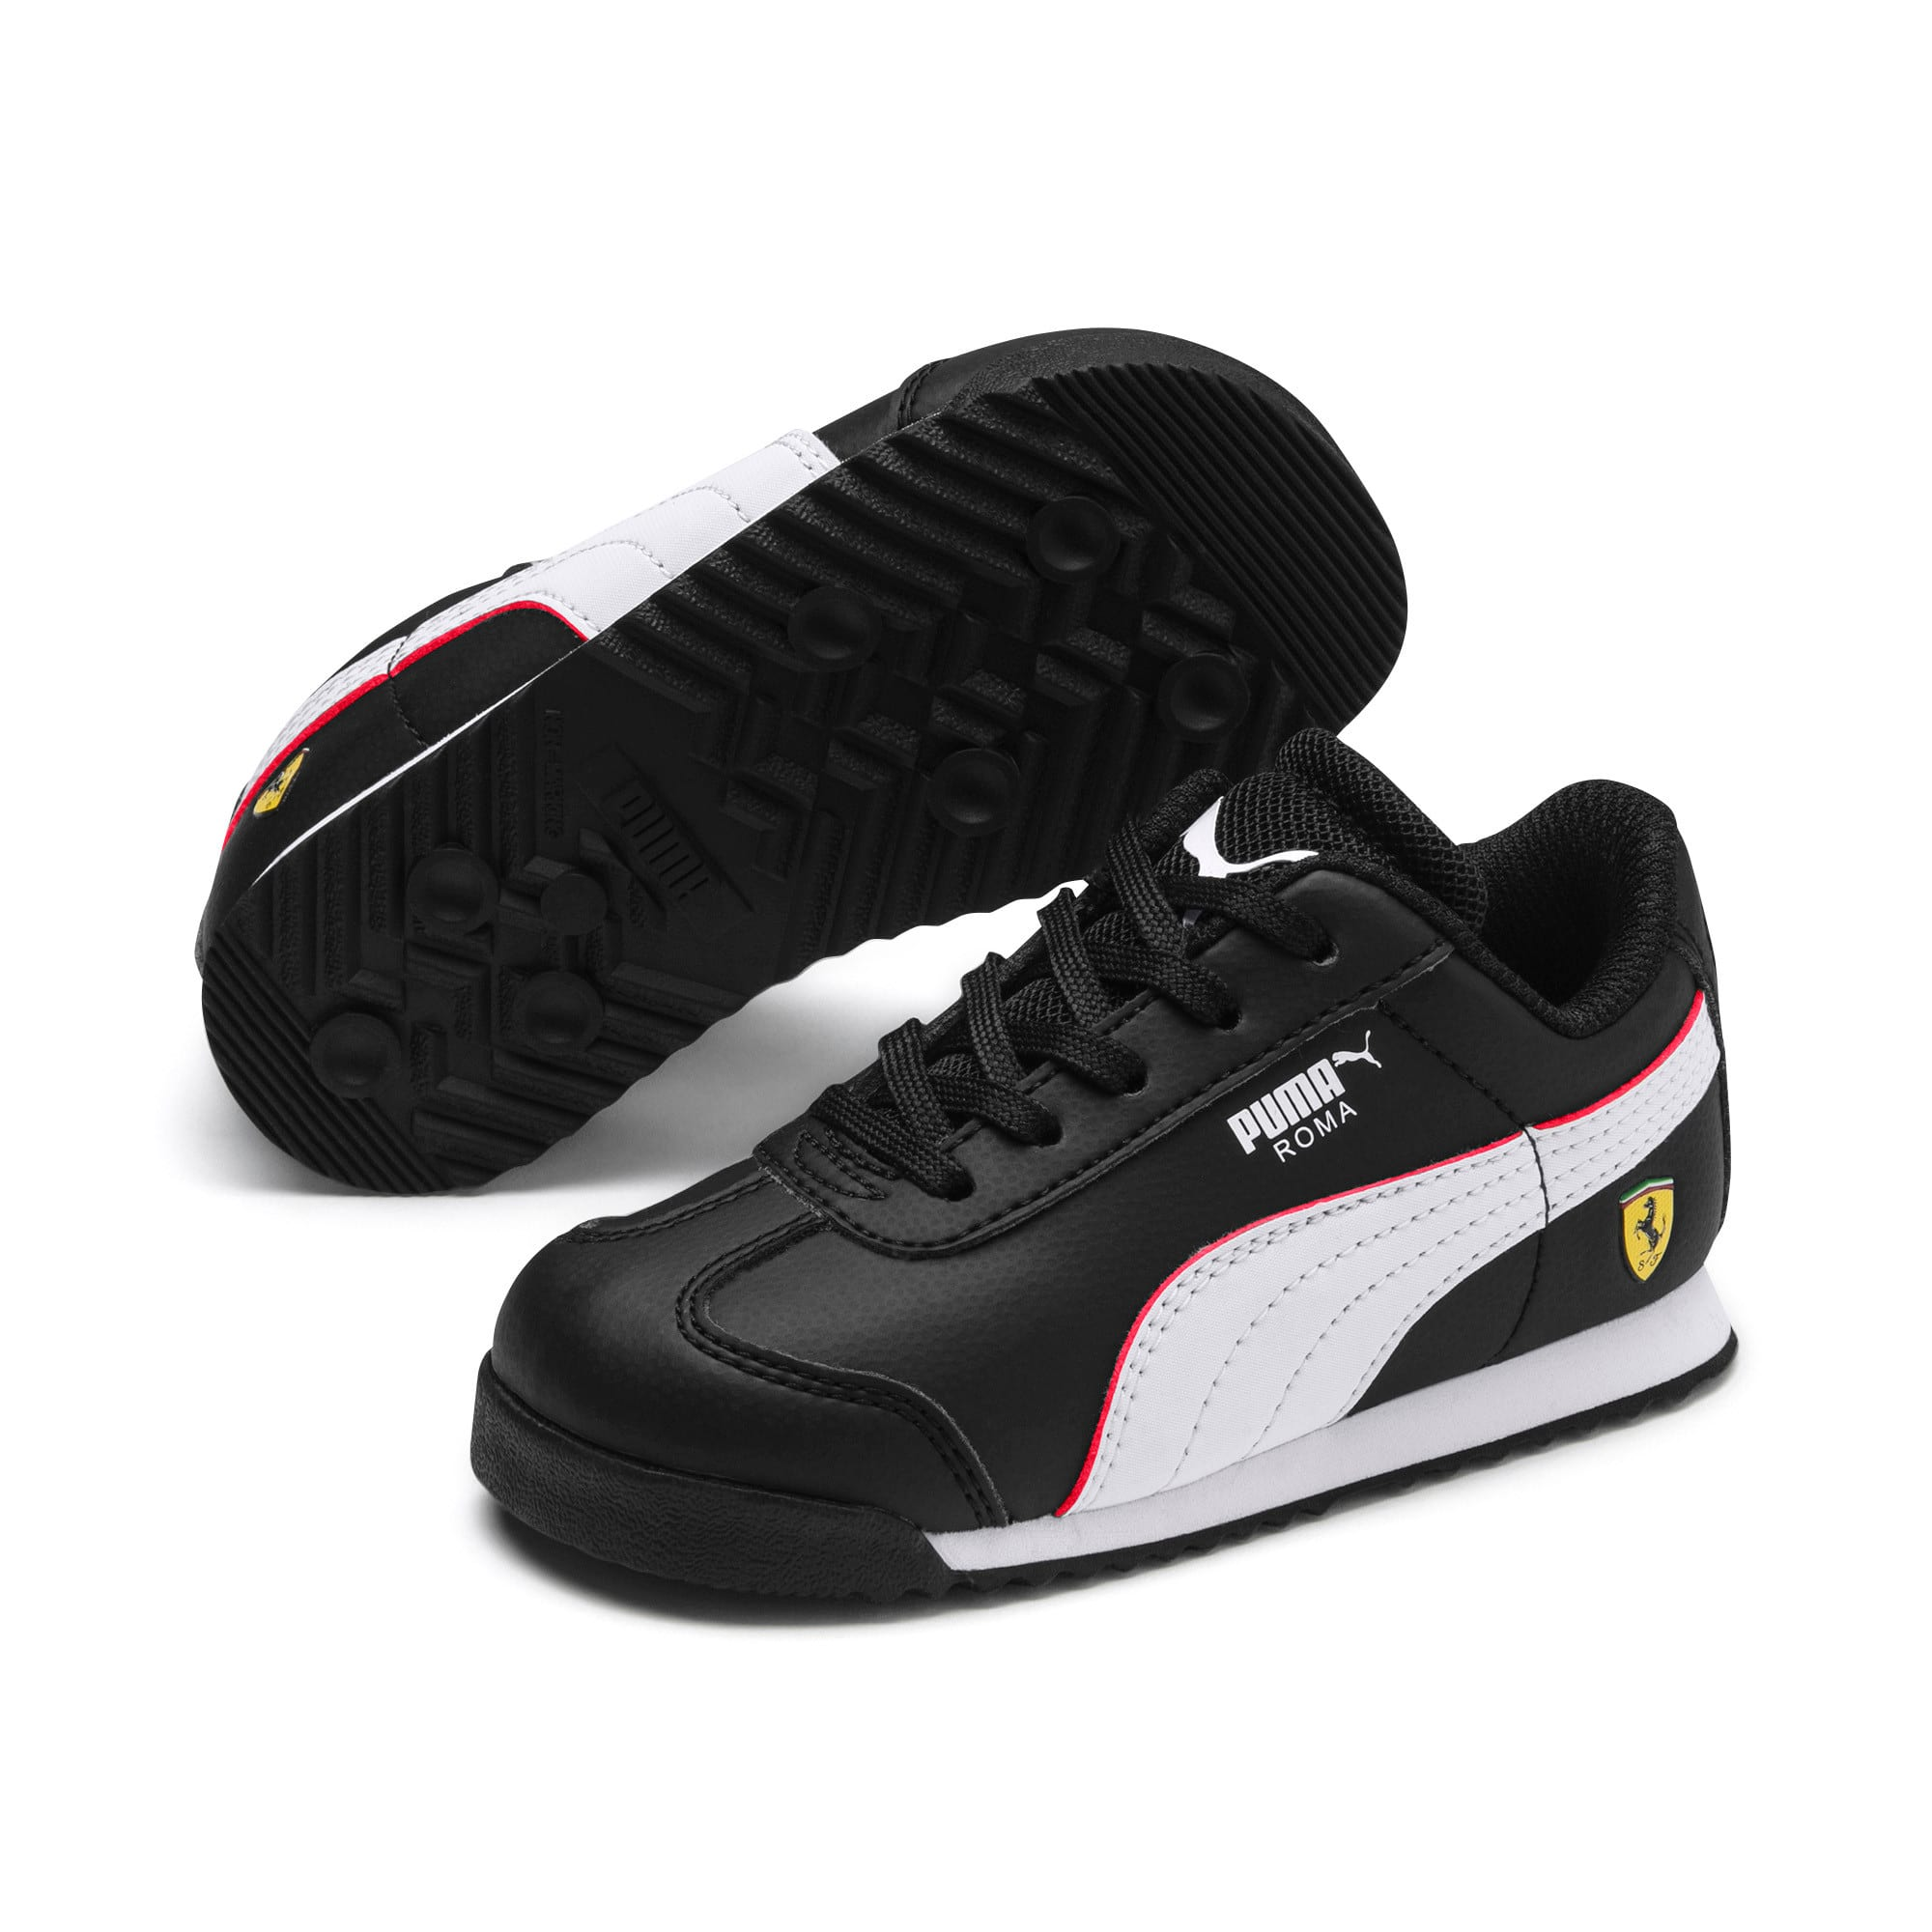 Thumbnail 2 of Scuderia Ferrari Roma Toddler Shoes, Black-White-Rosso Corsa, medium